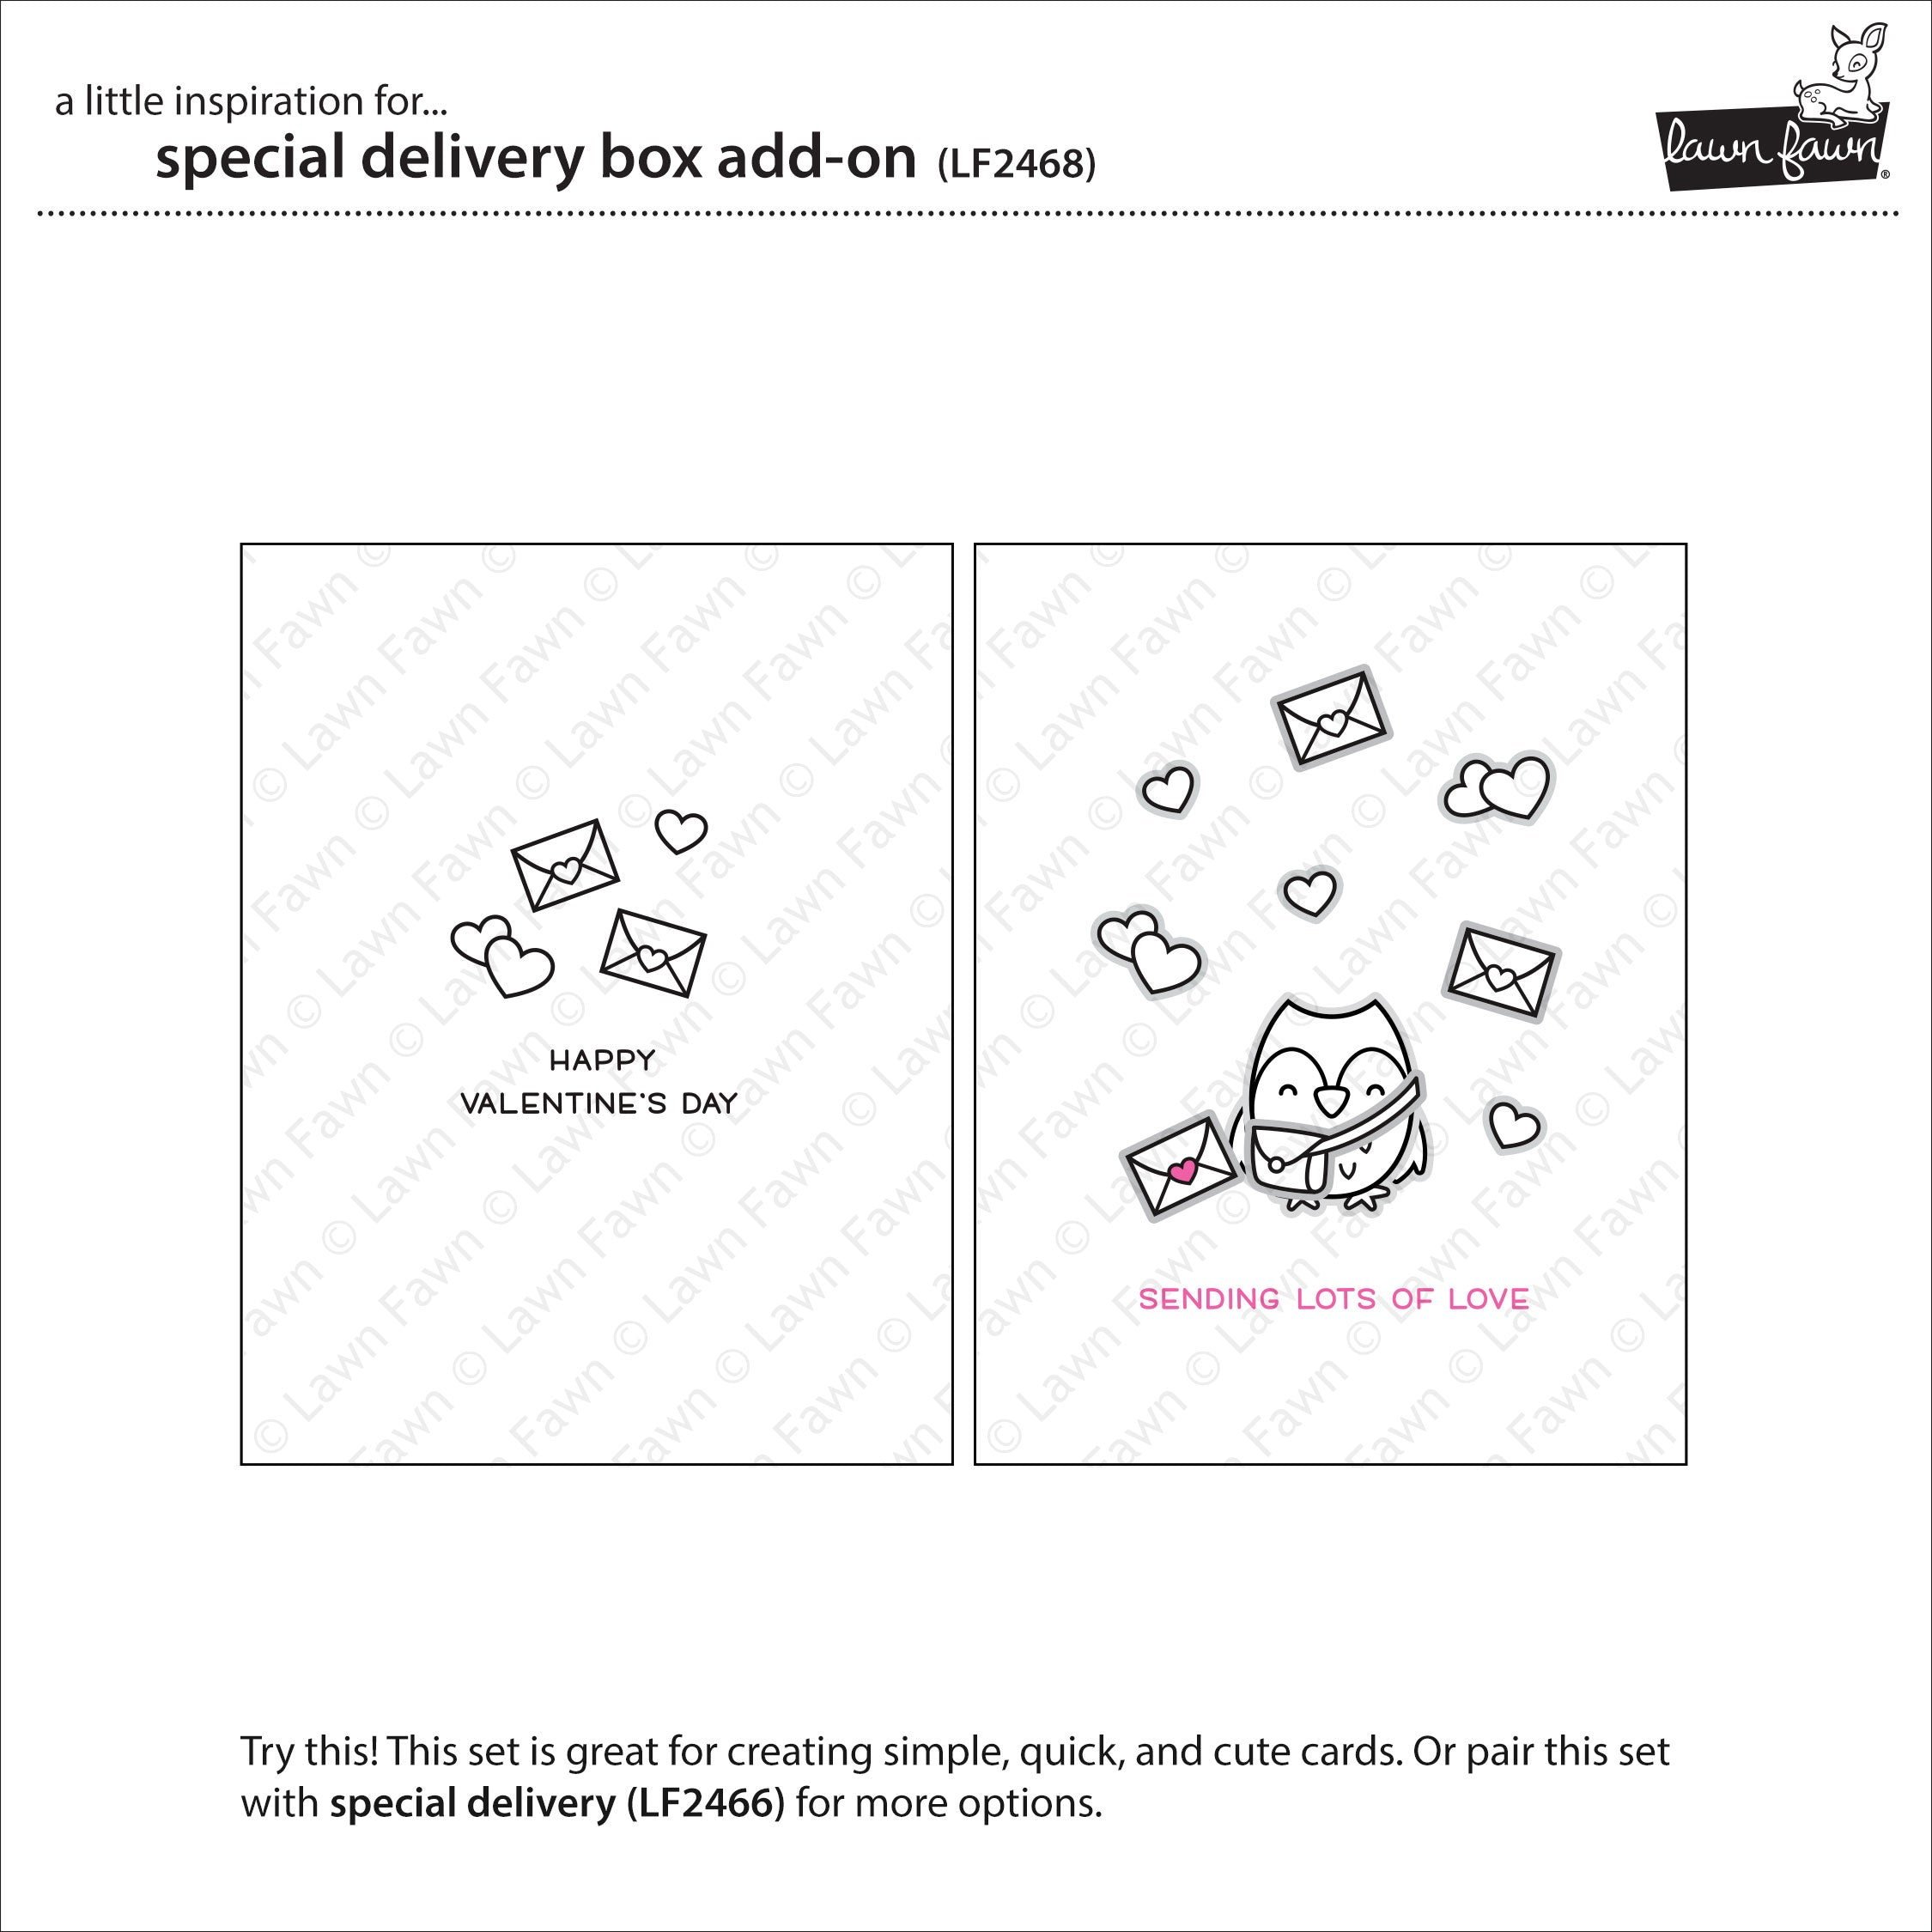 special delivery box add-on